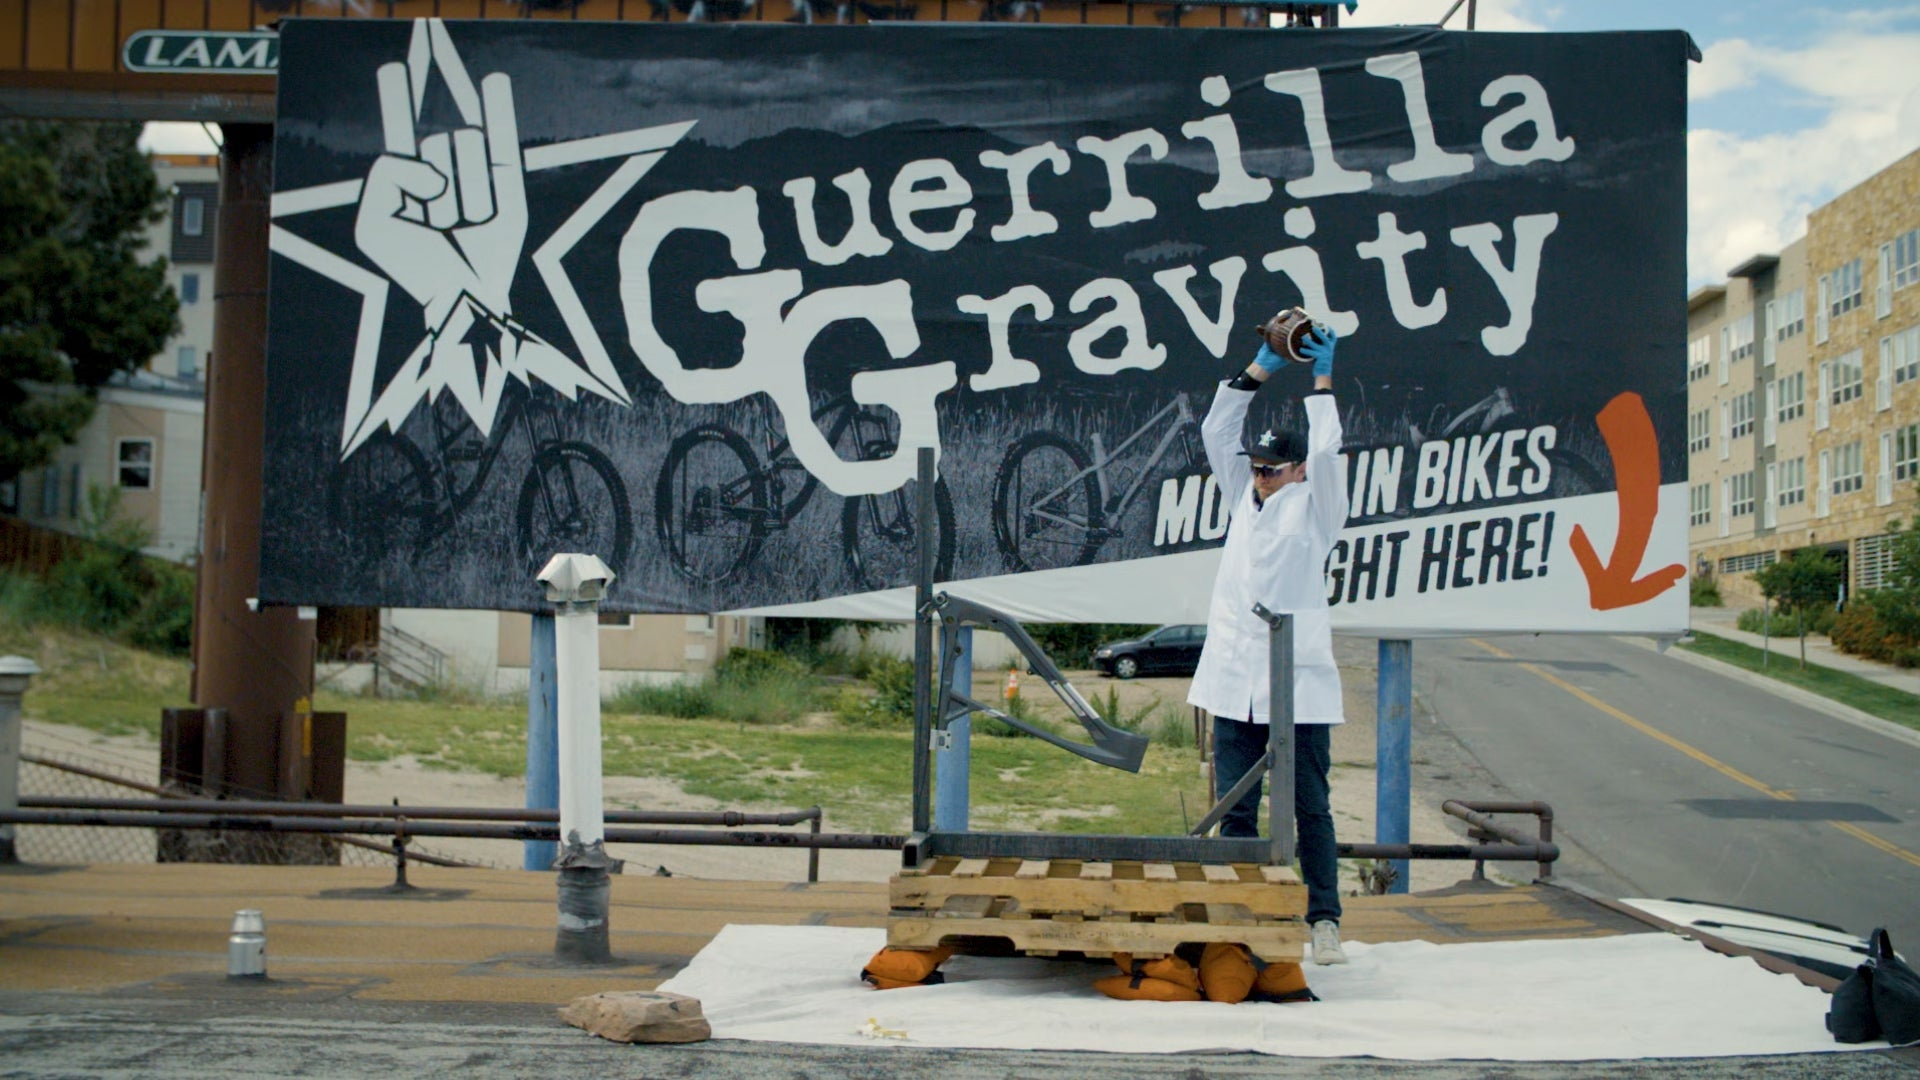 Guerrilla Gravity - Is It Revved? - Winding Up